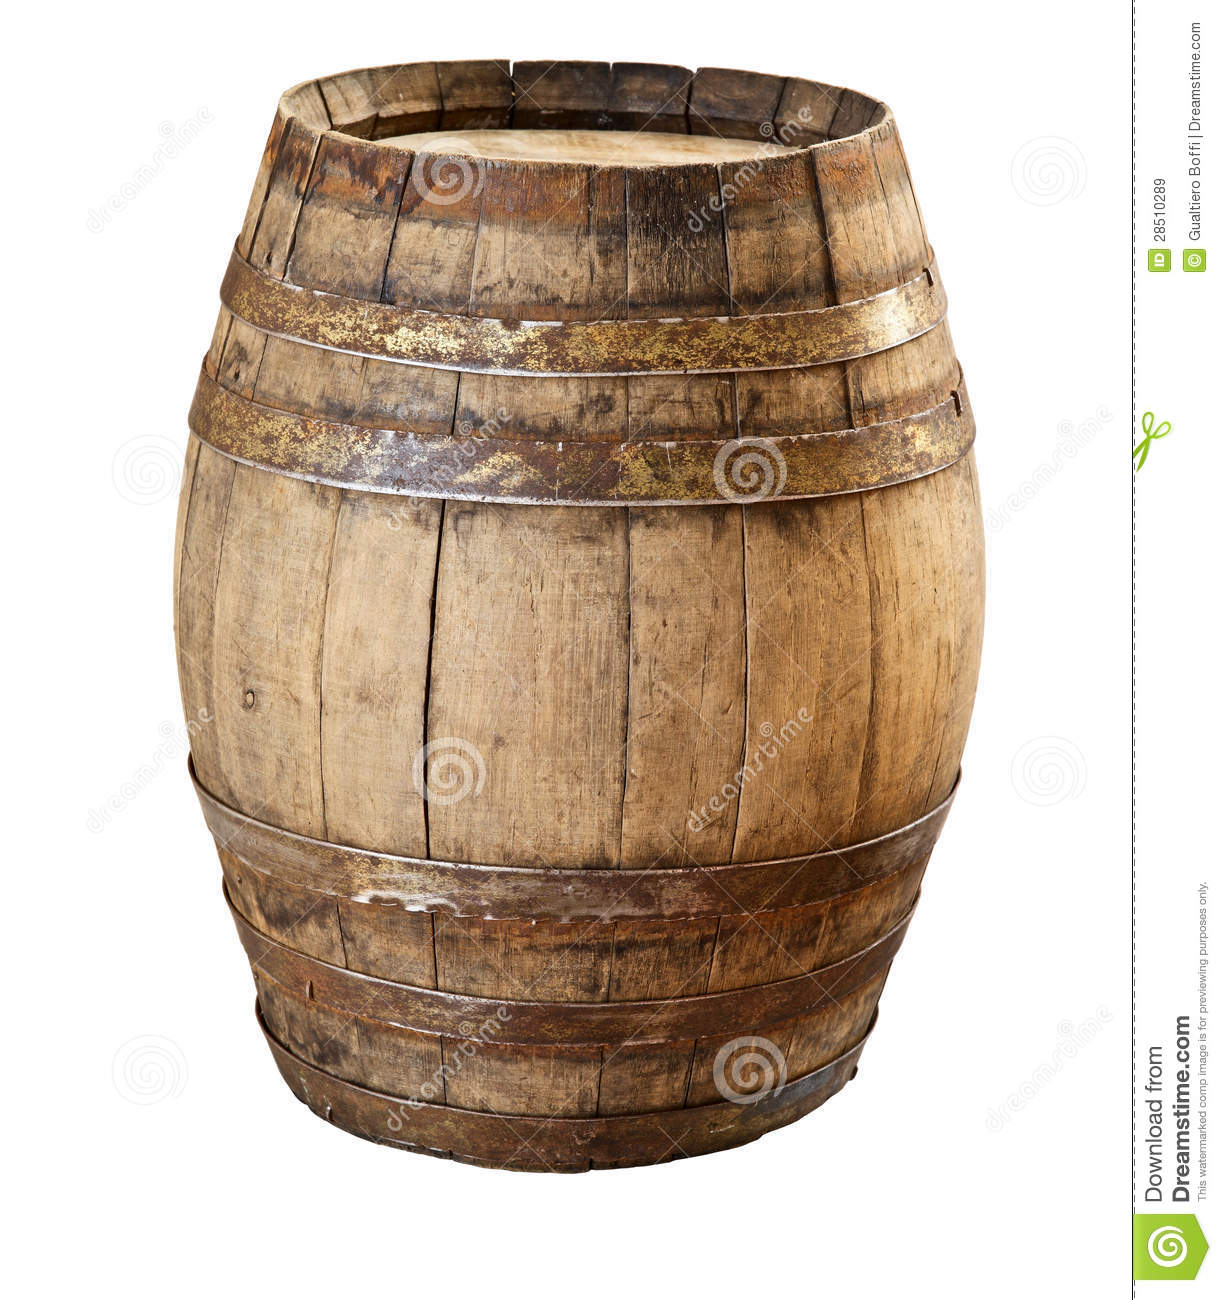 Wood Barrel Royalty Free Stock Images - Image: 28510289